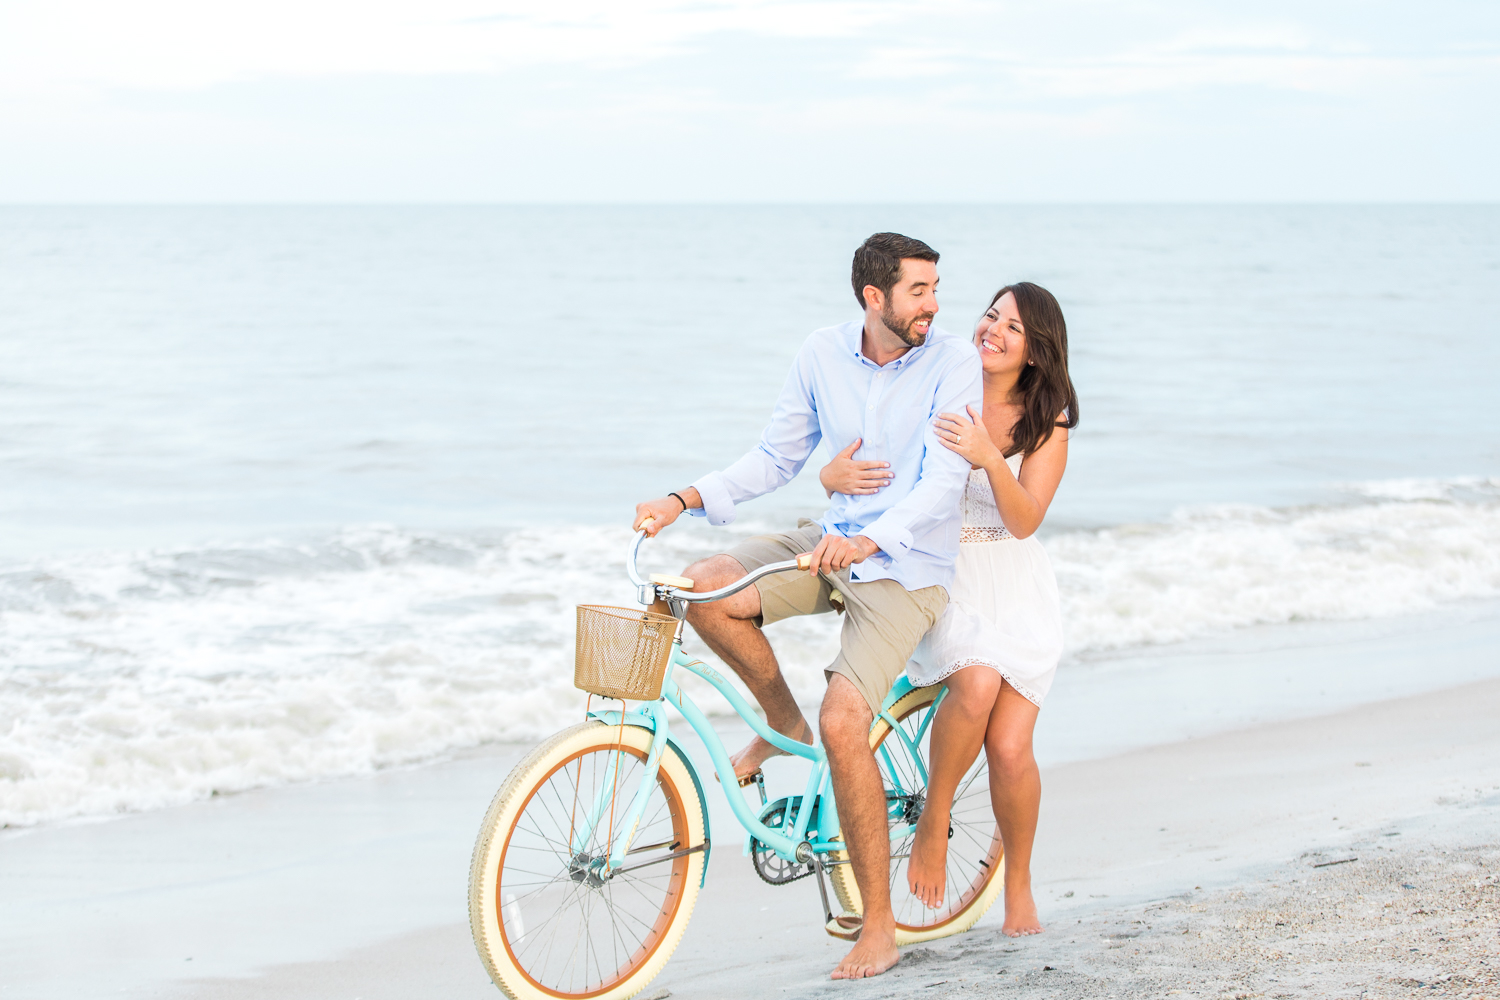 couple engagement photoshoot ideas with a beach cruiser bike